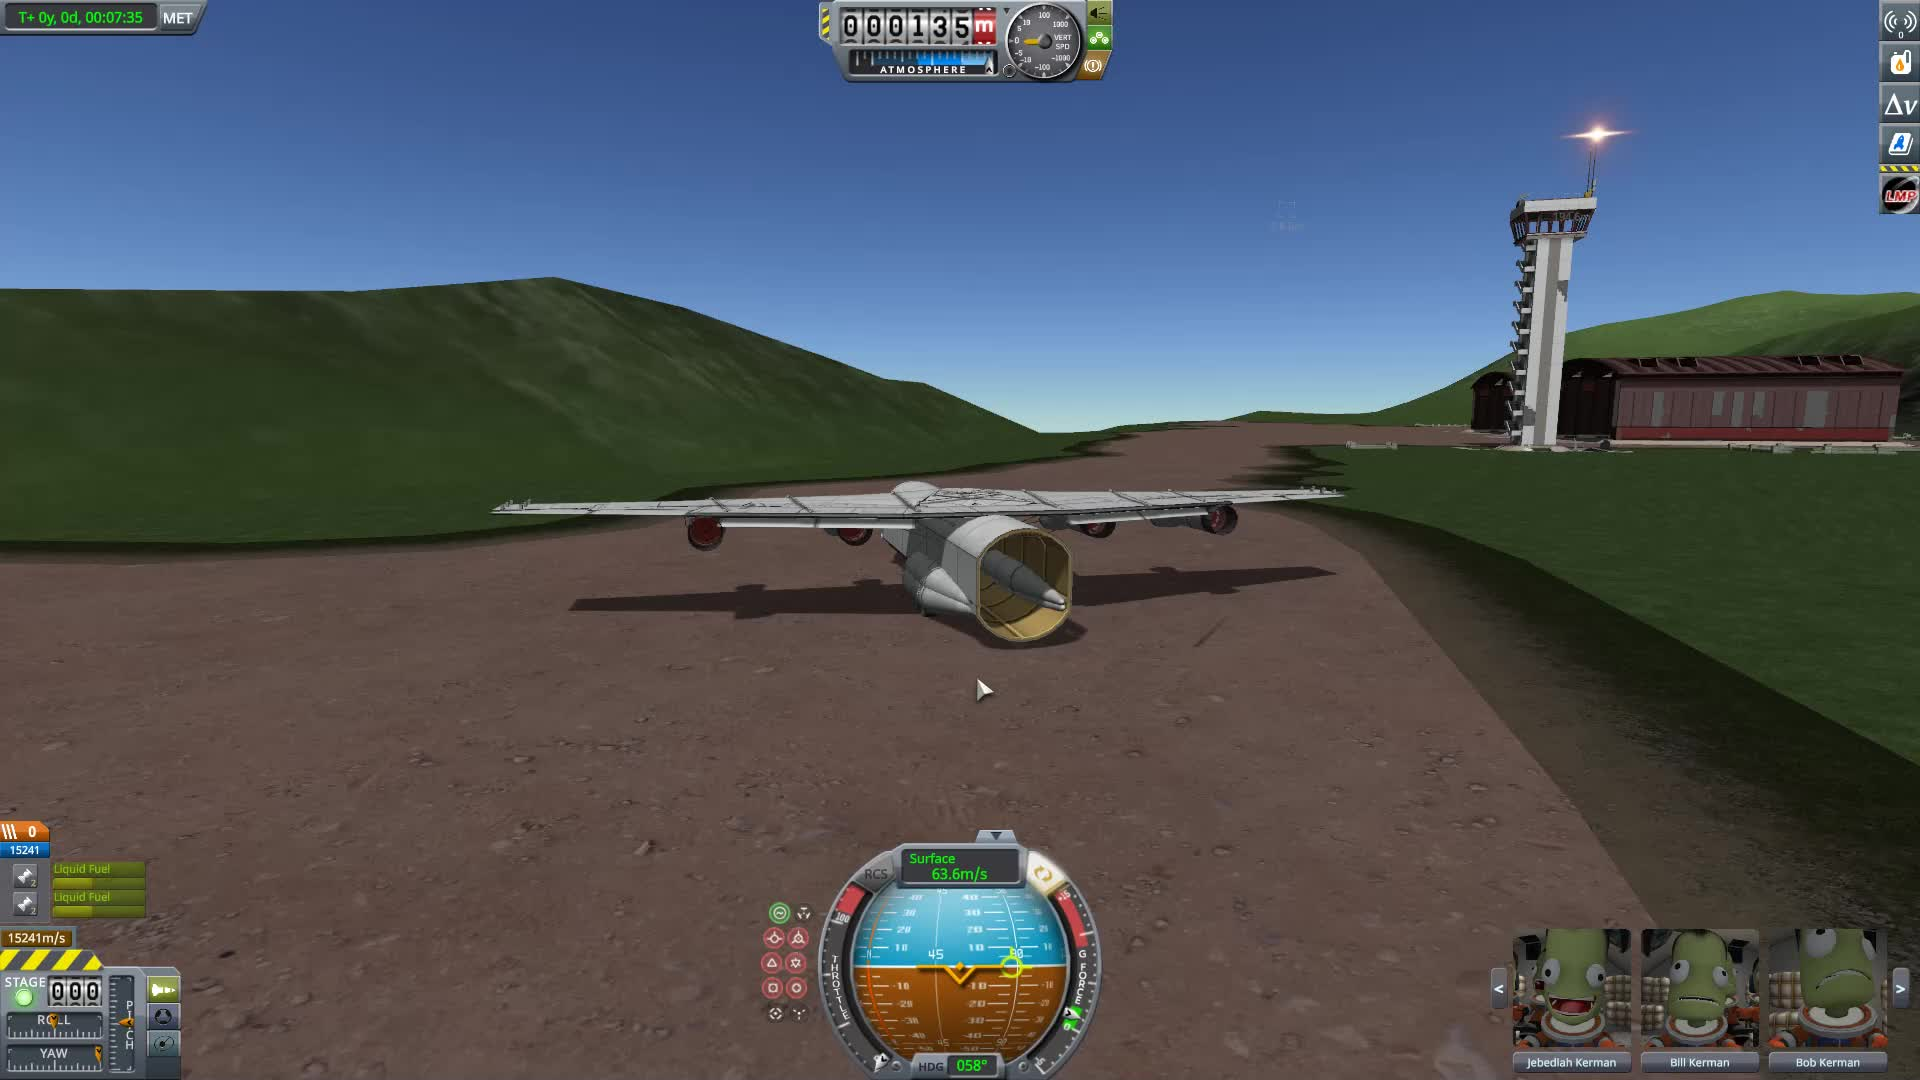 kerbalspaceprogram, Kerbal Space Program 2019.02.25 - 14.05.49.07.DVR GIFs